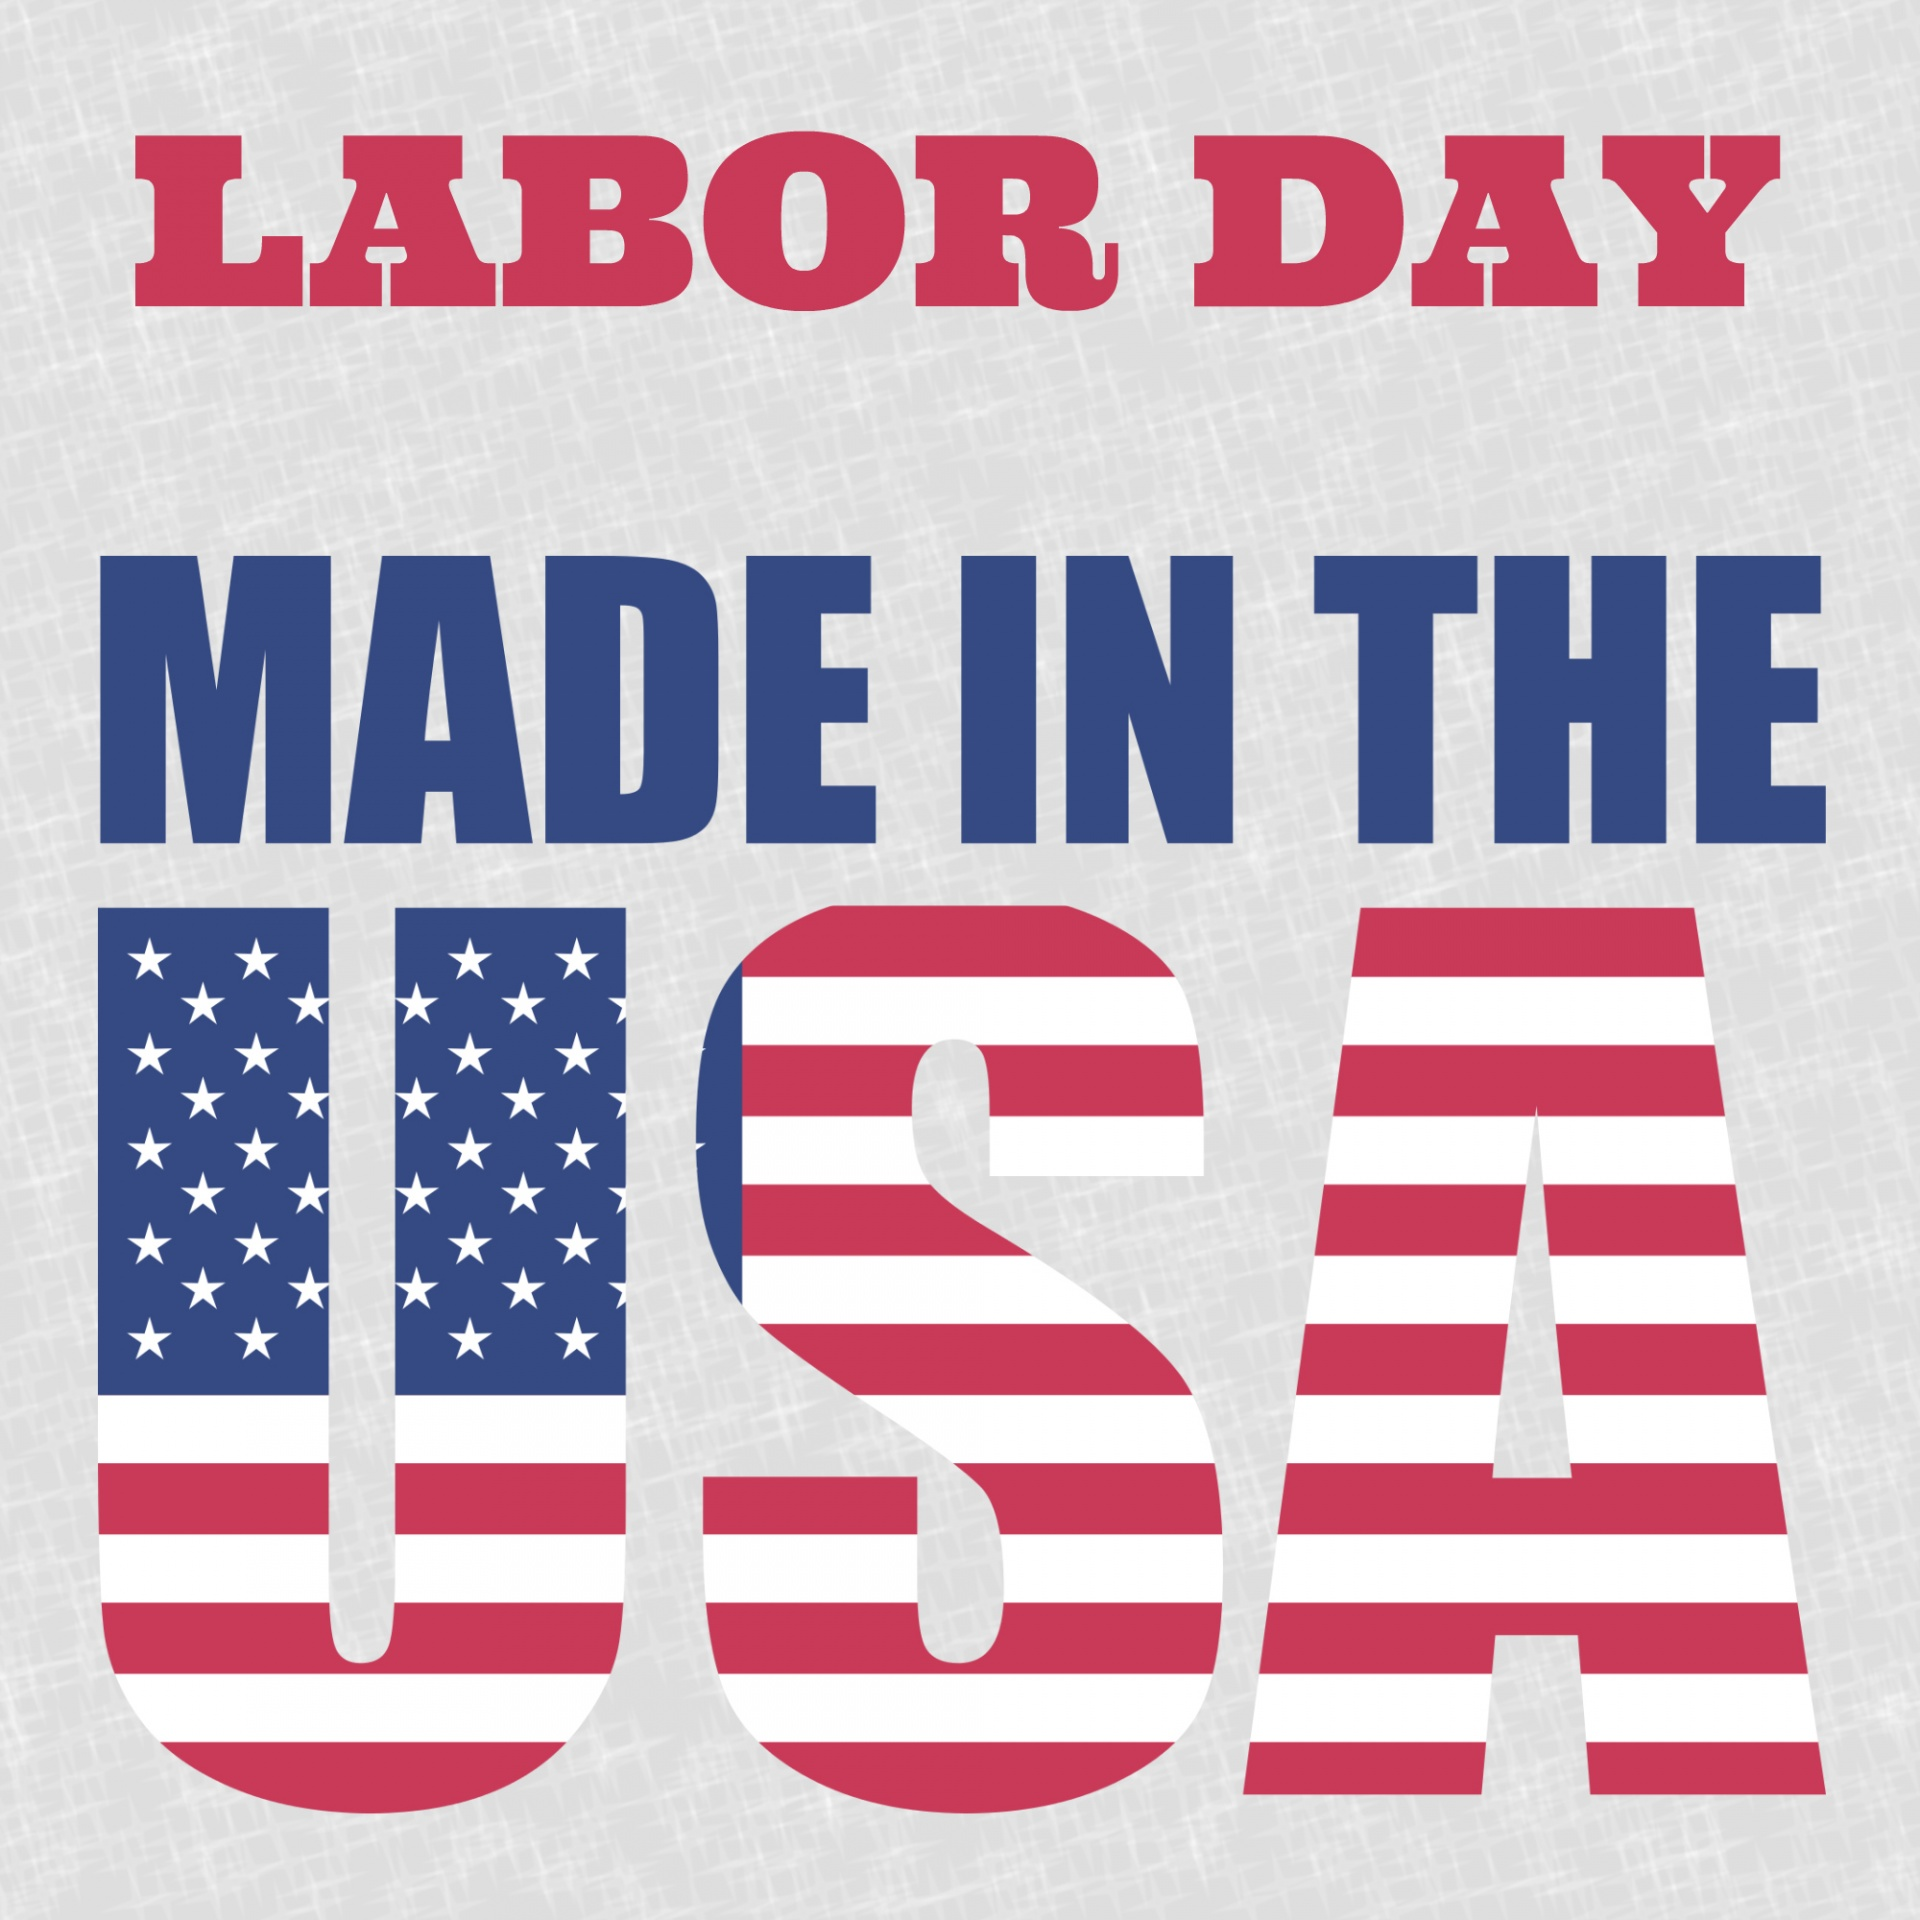 Celebrate Labor Day S Rich History D Take The Day Off